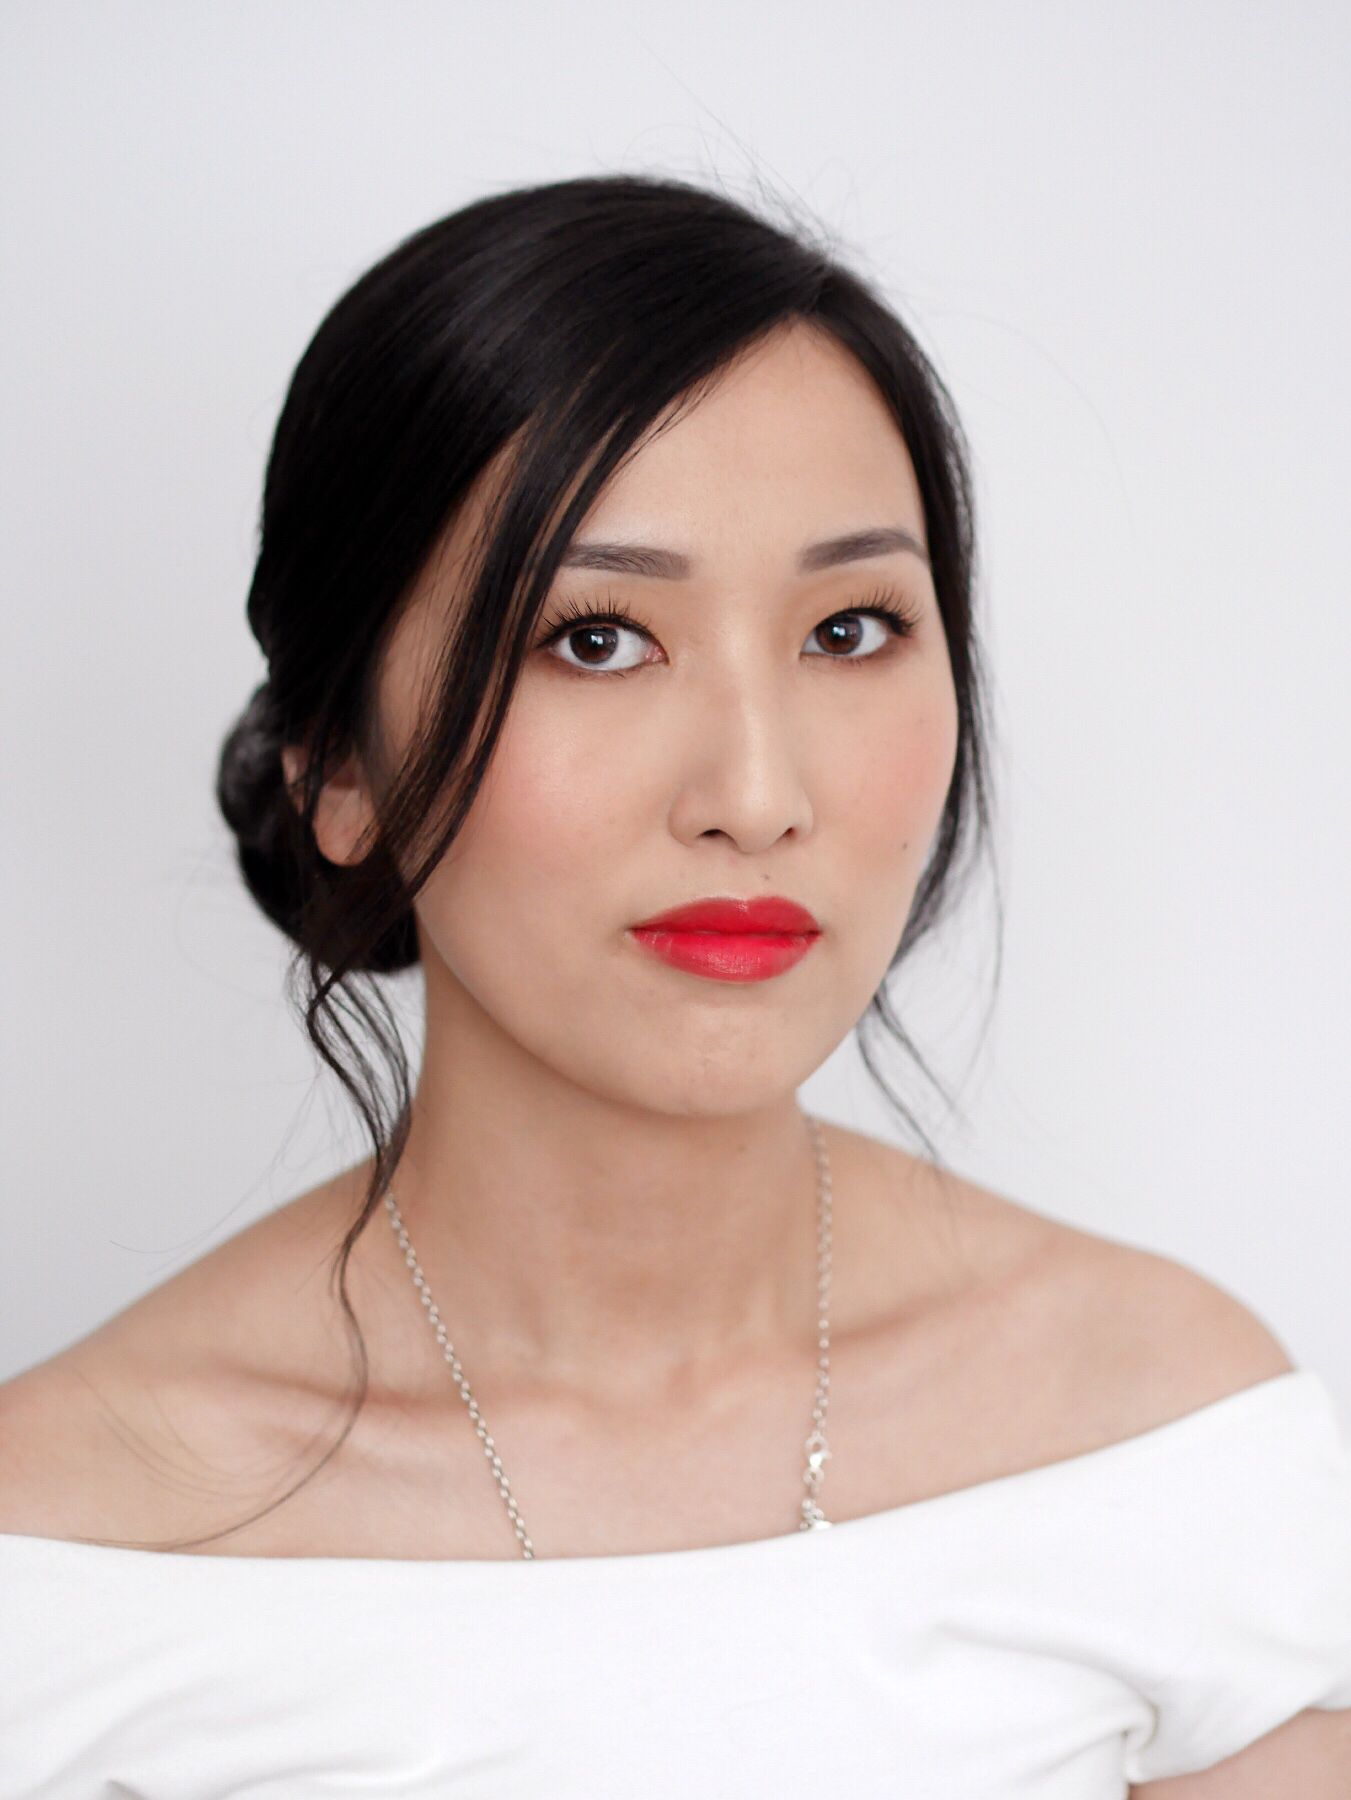 natural makeup for Asian paired with a red lip. makeup by Zoe Zhu www.zoezhu.com.au